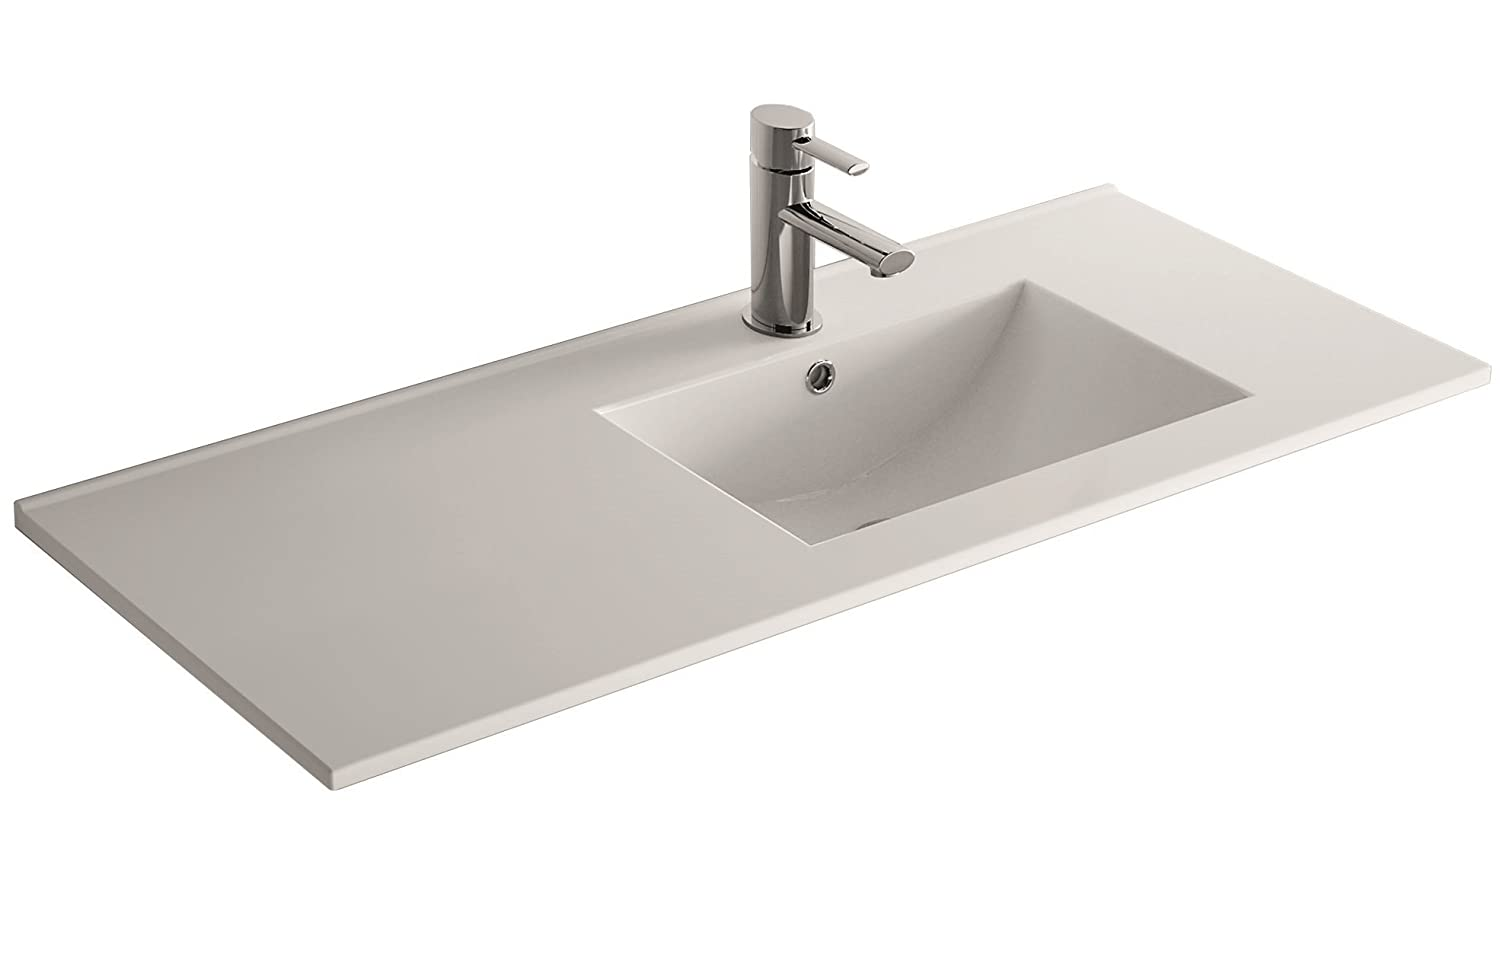 Cygnus Bath - 120 cm ceramic washbasin, with a basin off-set to the left, extra-flat 1100120746